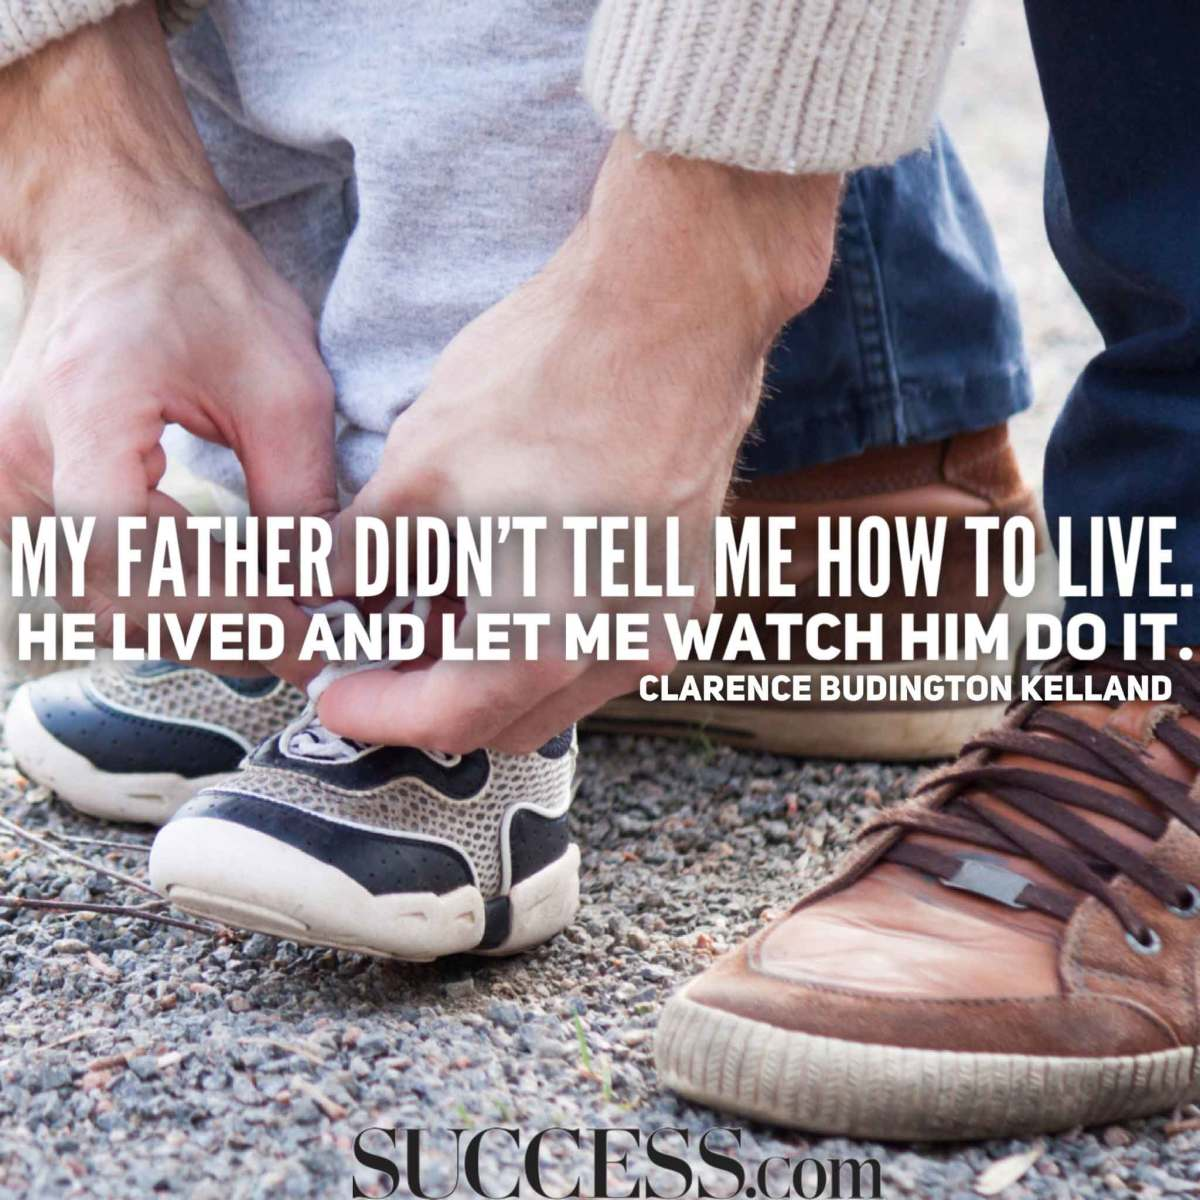 One of the noblest commendations a man could have is the praise of his son.